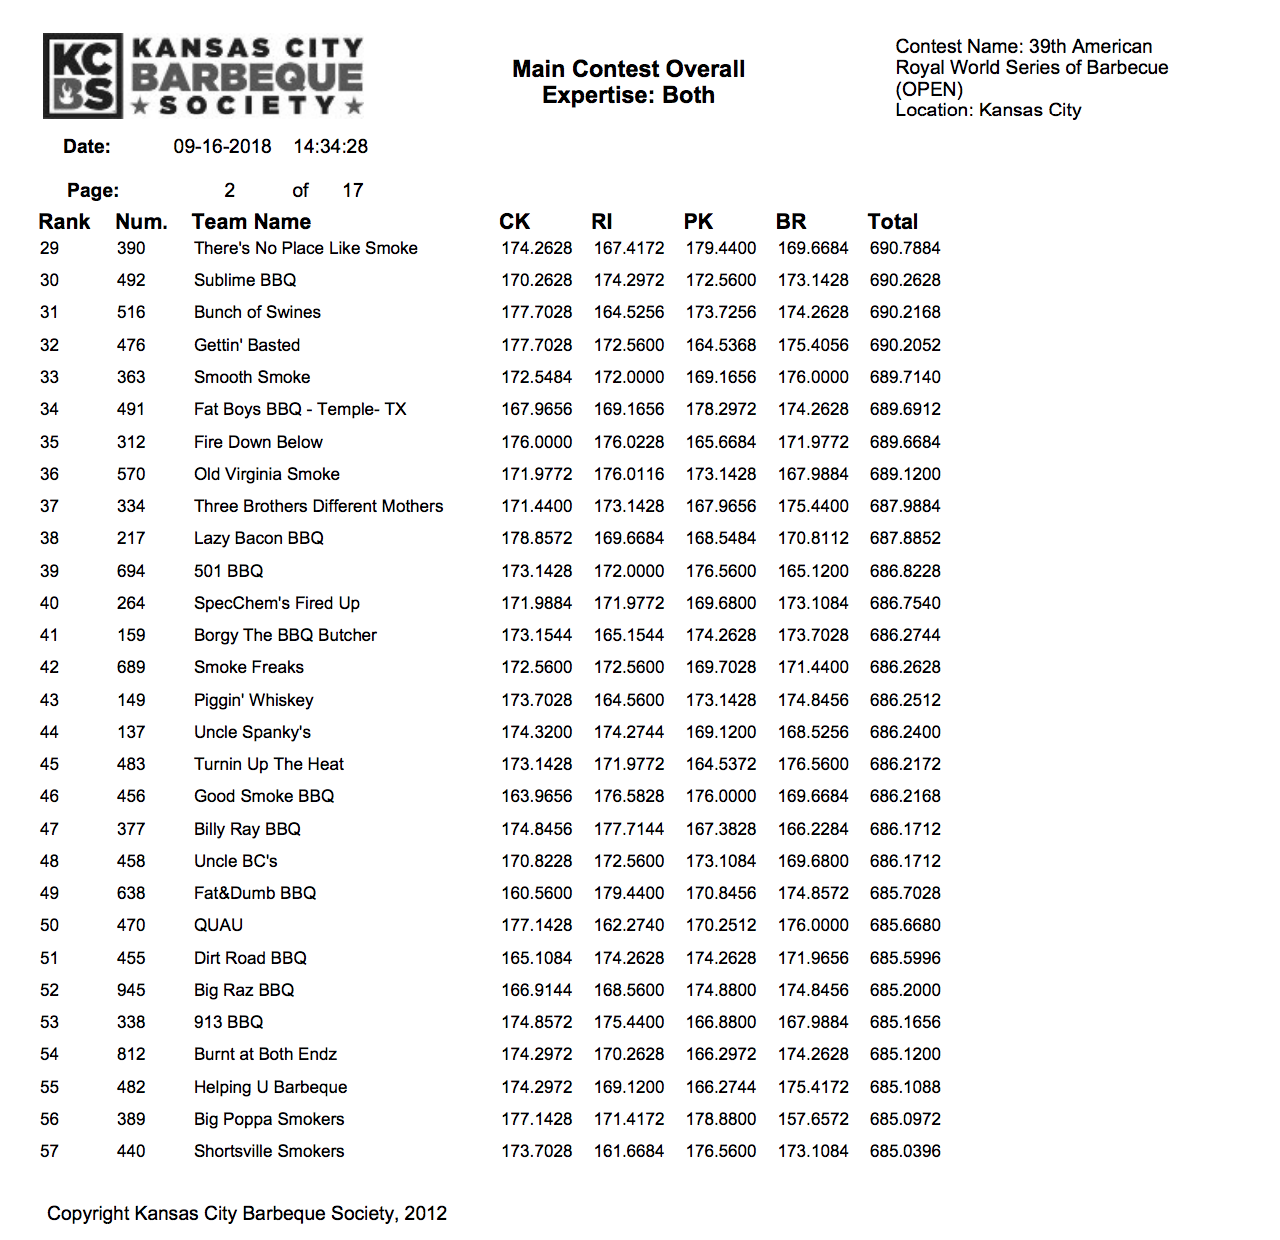 American Royal 2018 Results page 2